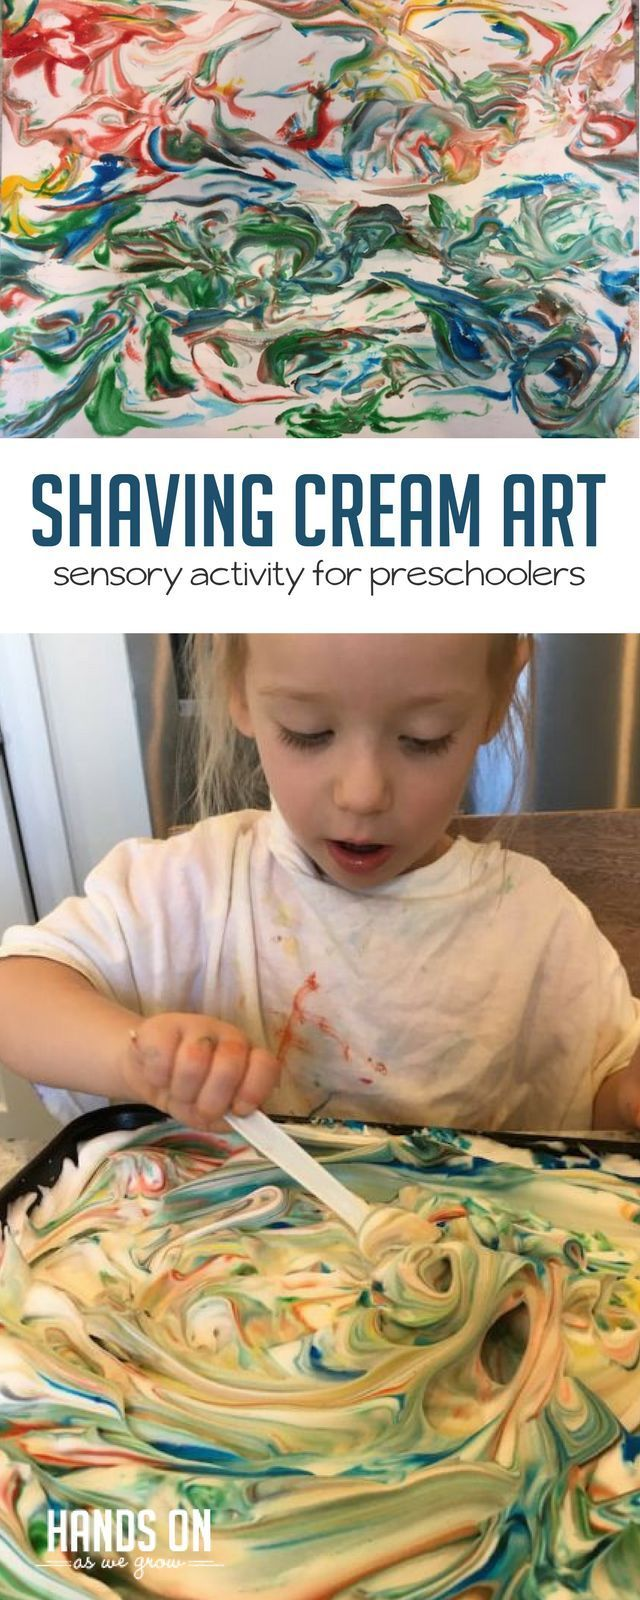 Help your child explore their inner artist with this shaving cream sensory activity! With an easy set up and fun art project, your preschooler will love this activity.